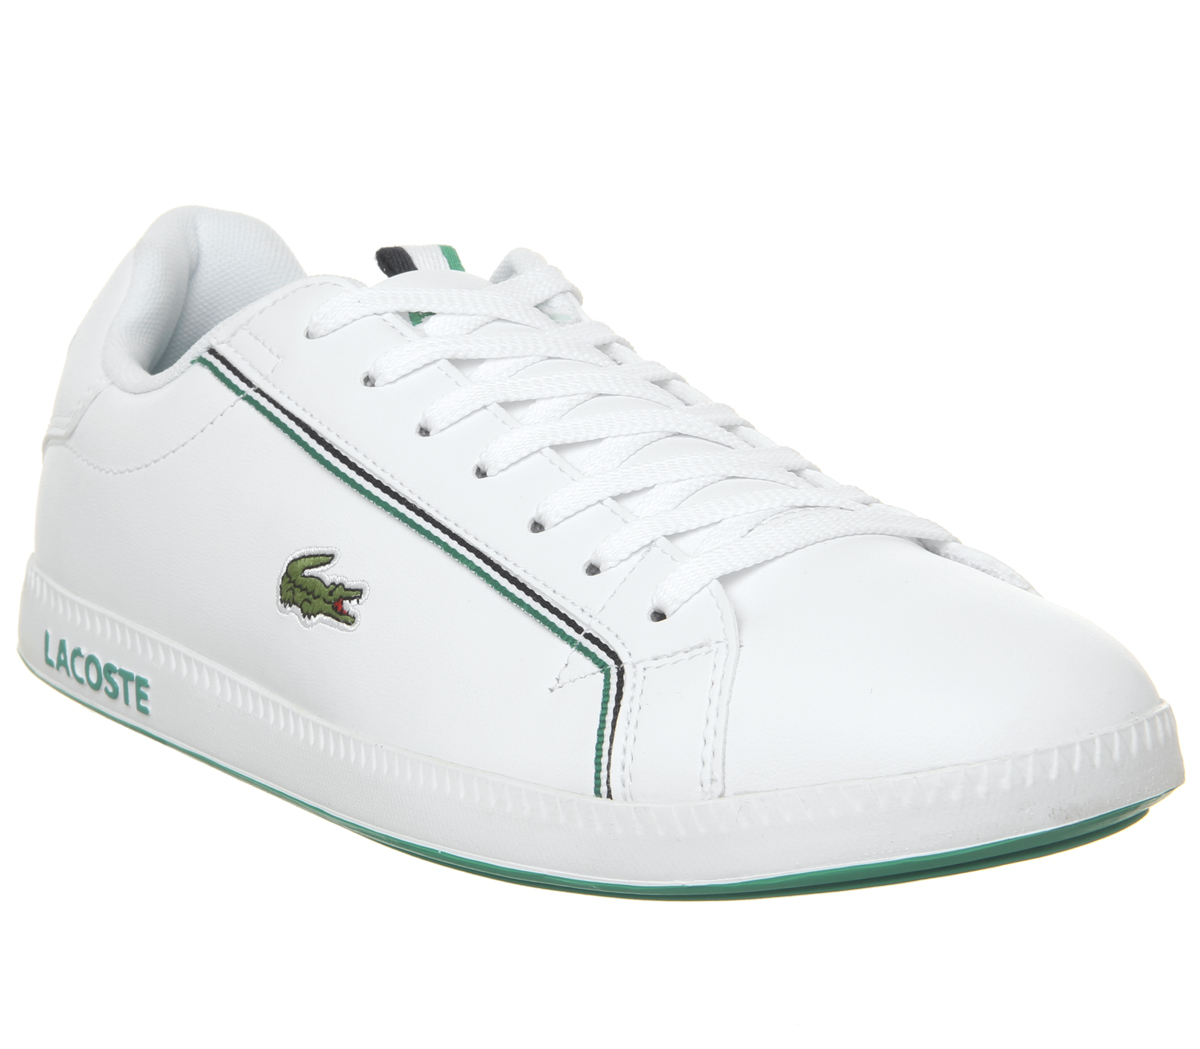 015aee41a8 Sentinel Lacoste Graduate Trainers White Green Trainers Shoes